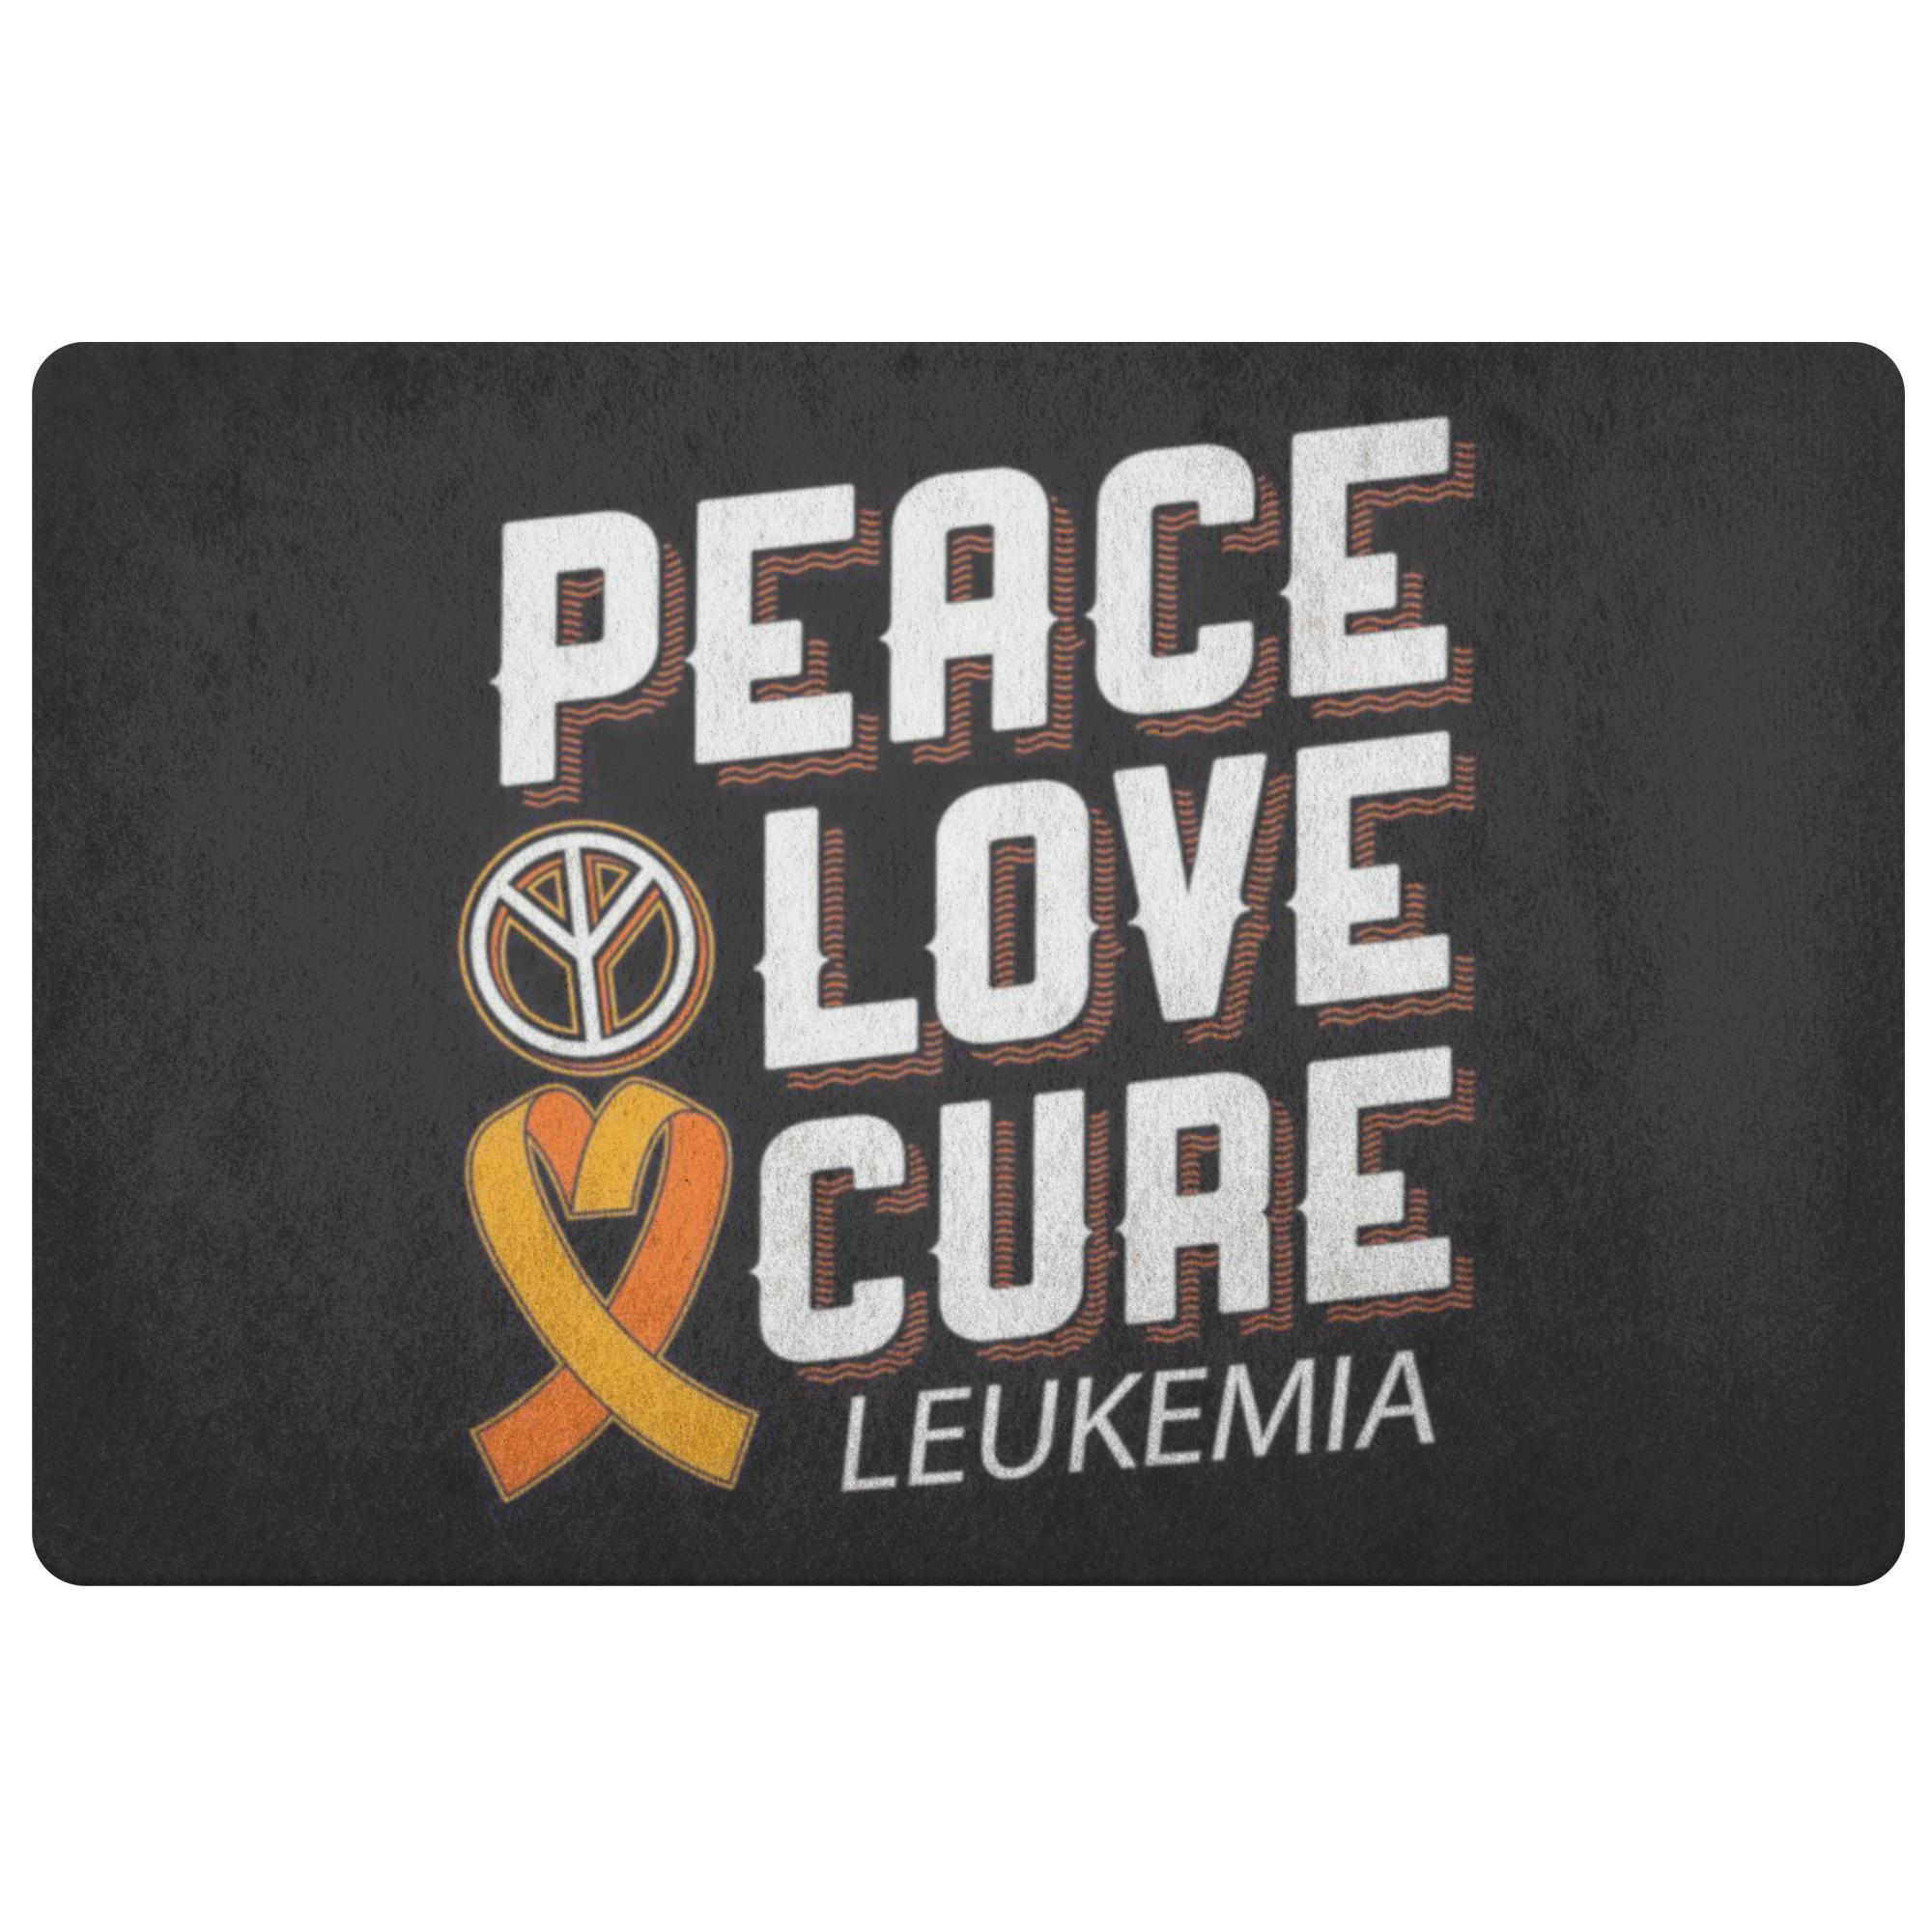 Peace Love Cure Leukemia Cancer Awareness 18X26 Thin Indoor Door Mat Entry Rug-Doormat-Black-JoyHip.Com